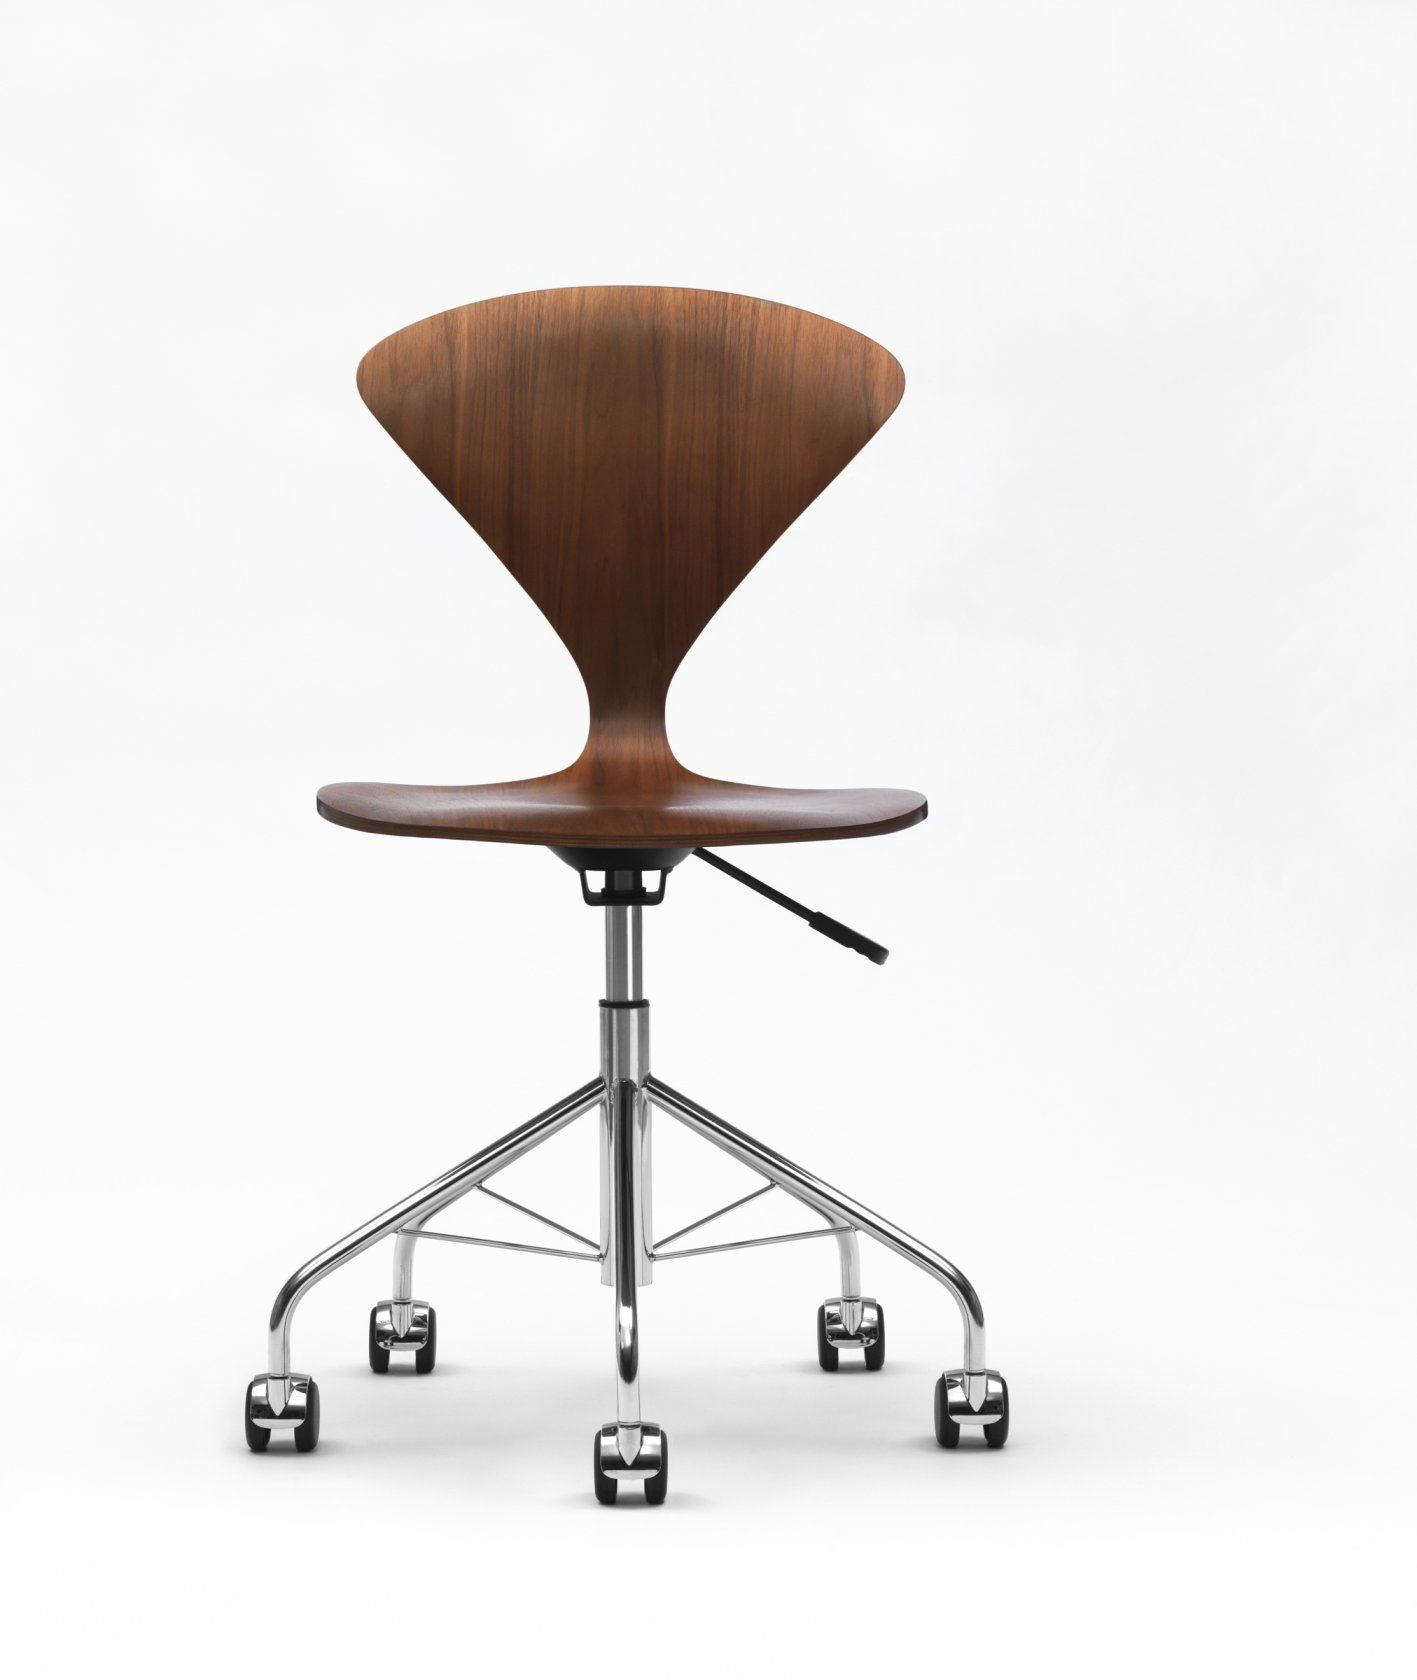 cherner furniture. Cherner Task Chair With Arms, Chairs \u0026 Seating Furniture